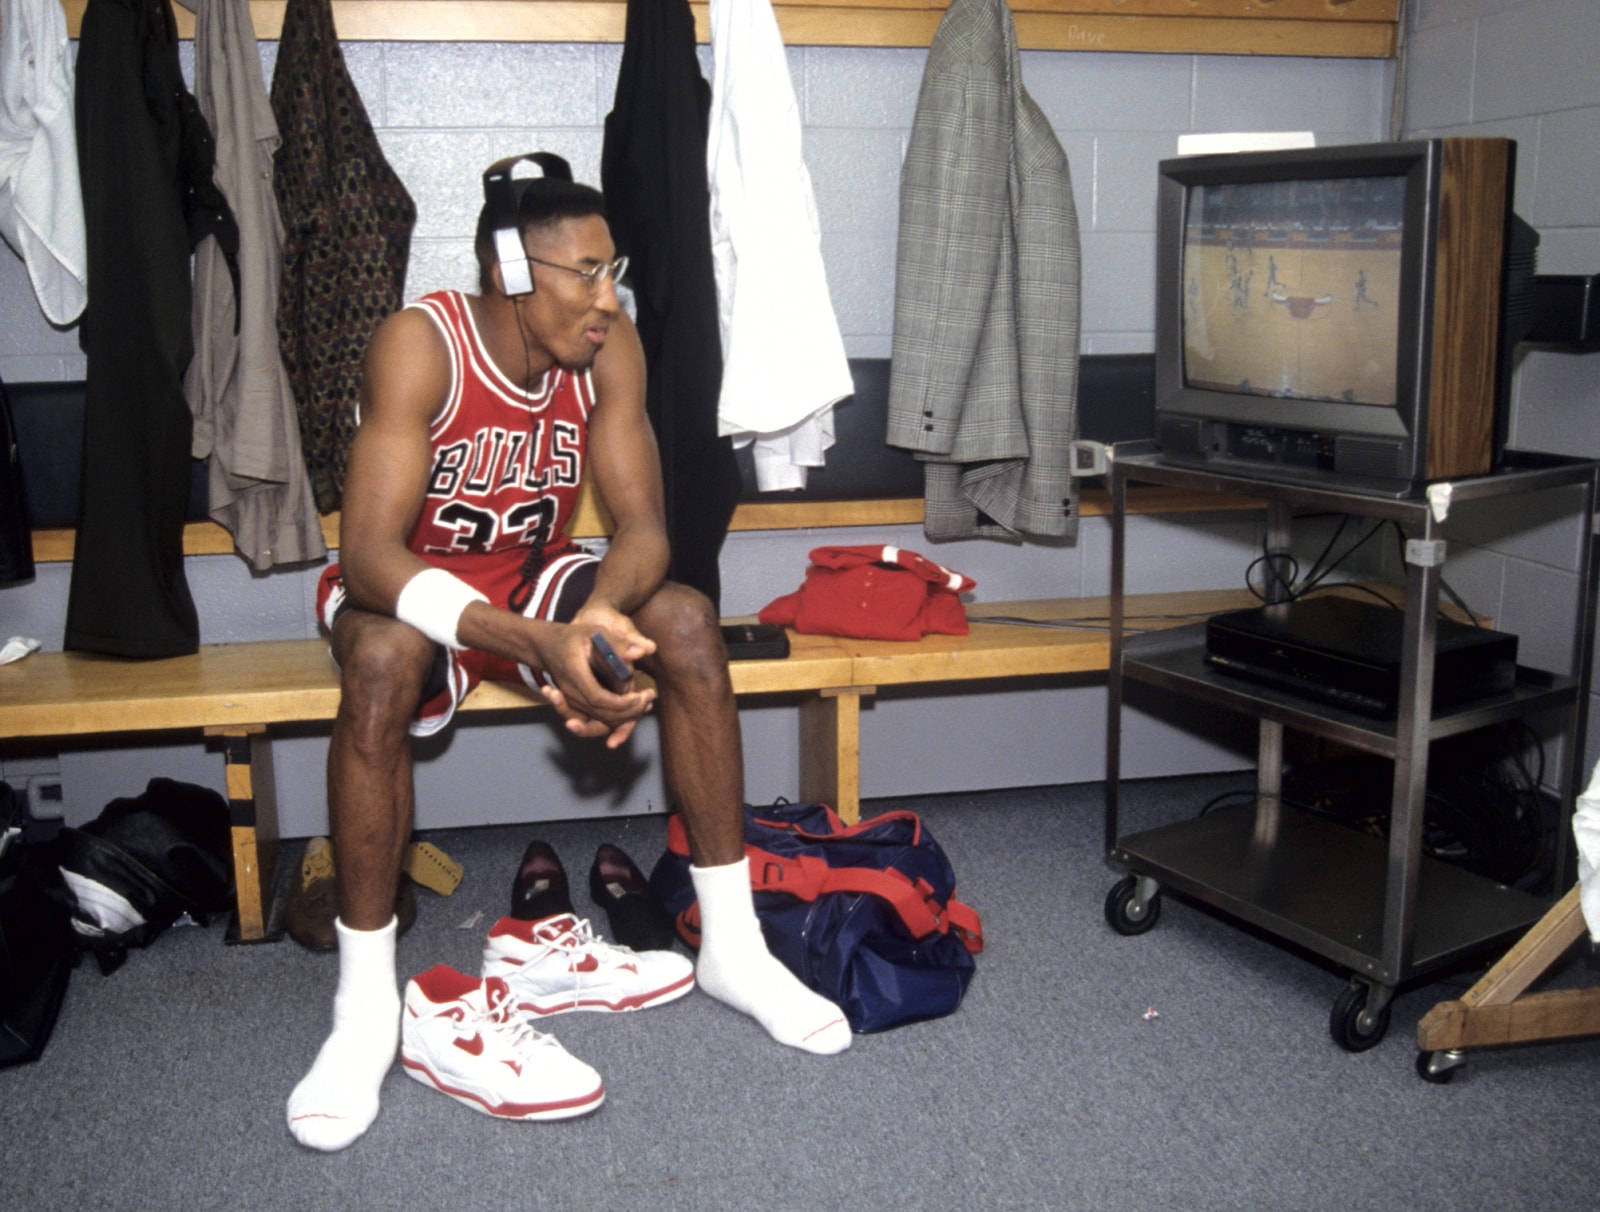 Pippen in the locker room watching TV with headphones on